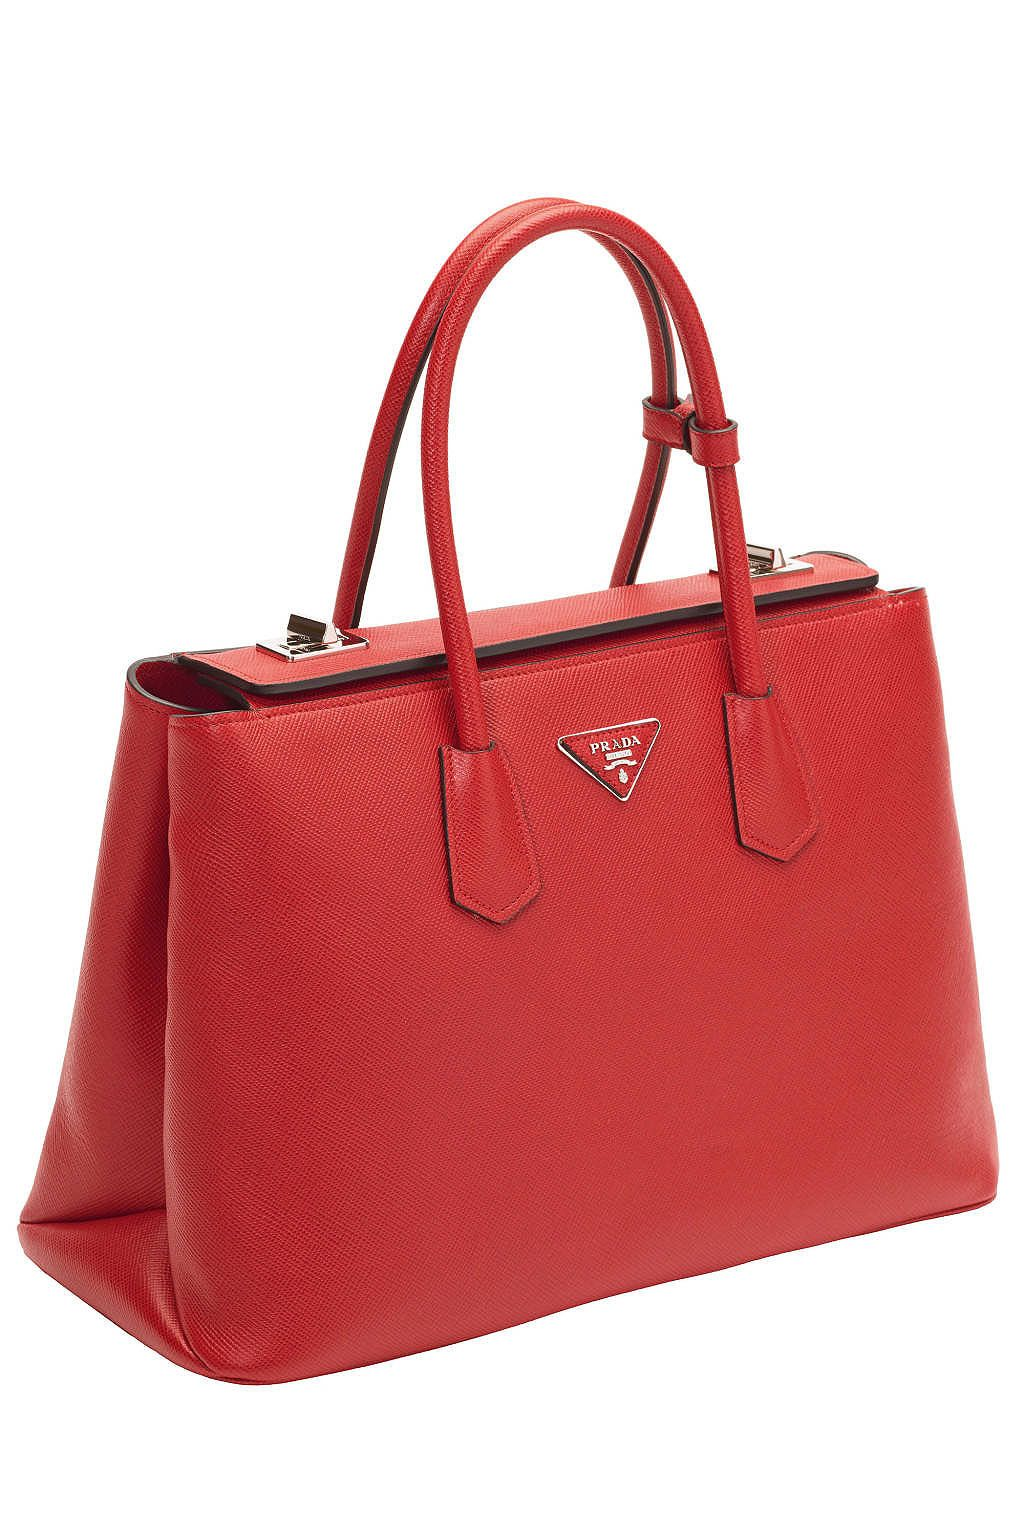 991775e291c5f 10 Designer Bags Every Woman Should Own   Carteiras e Bolsinhas